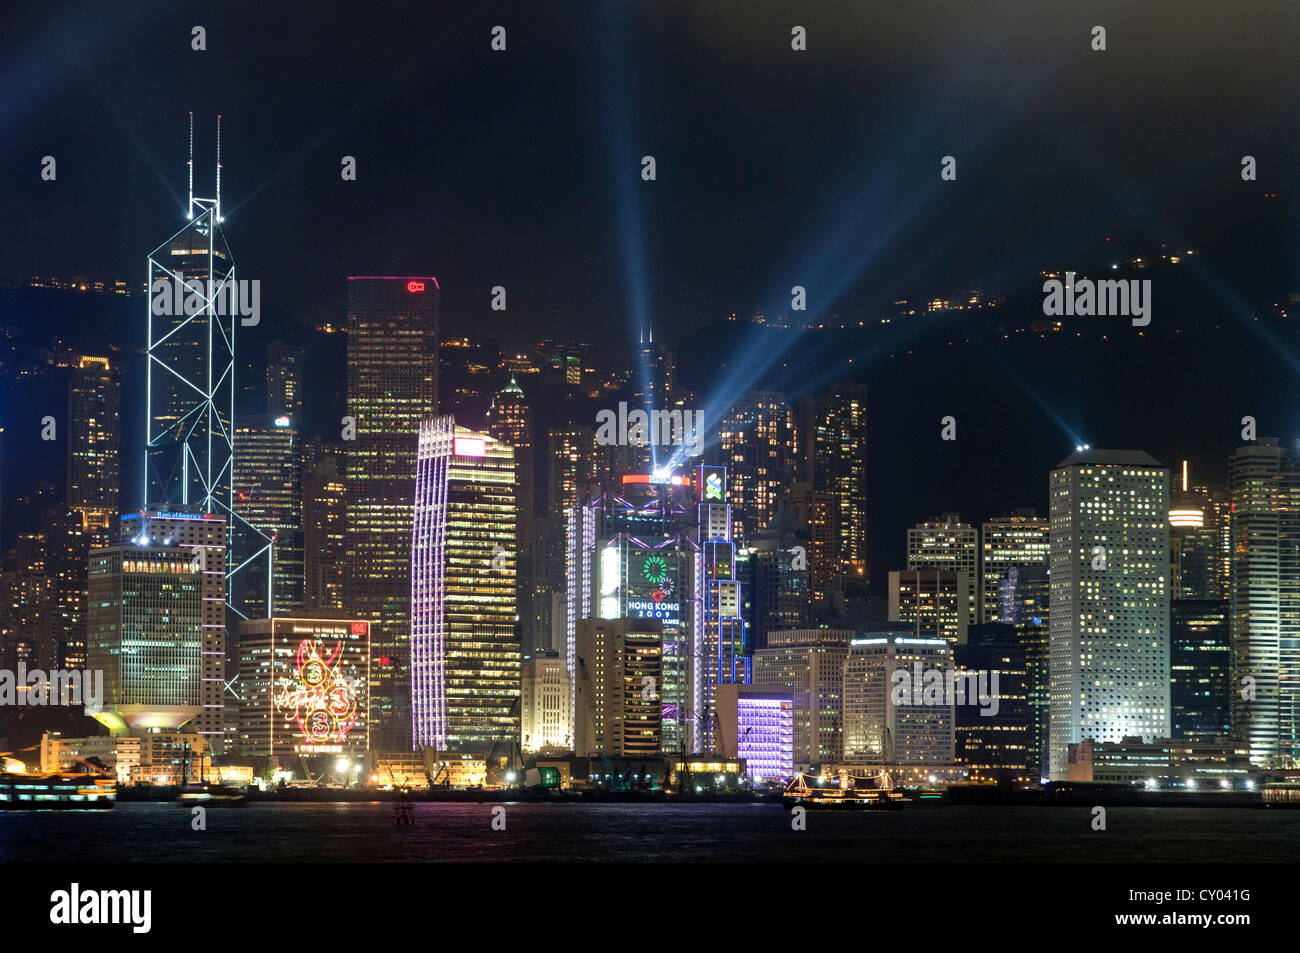 Laser light show on the skyscrapers of the Central District of Hong Kong Island as seen from Kowloon, Hong Kong, - Stock Image